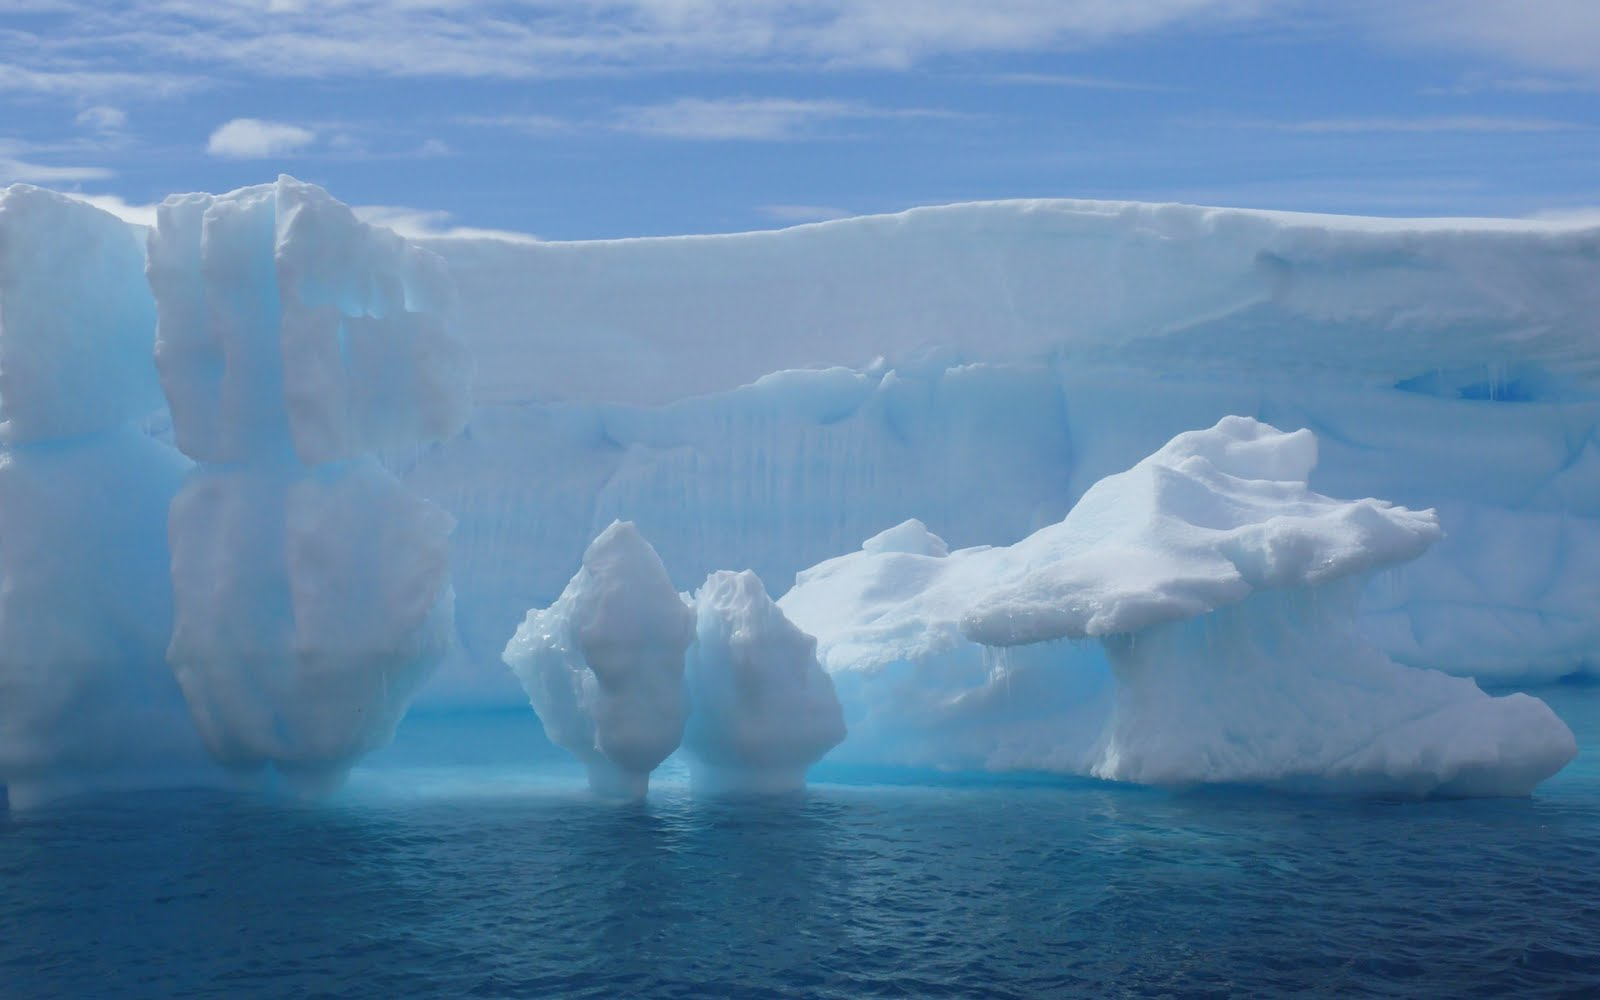 http://3.bp.blogspot.com/_mGkoANc7fi0/TQpSuJ3S33I/AAAAAAAAAgk/WYTFN8_tSlE/s1600/antarctic_iceberg_wallpaper_winter_nature_wallpaper_1920_1200_widescreen_1168.jpg